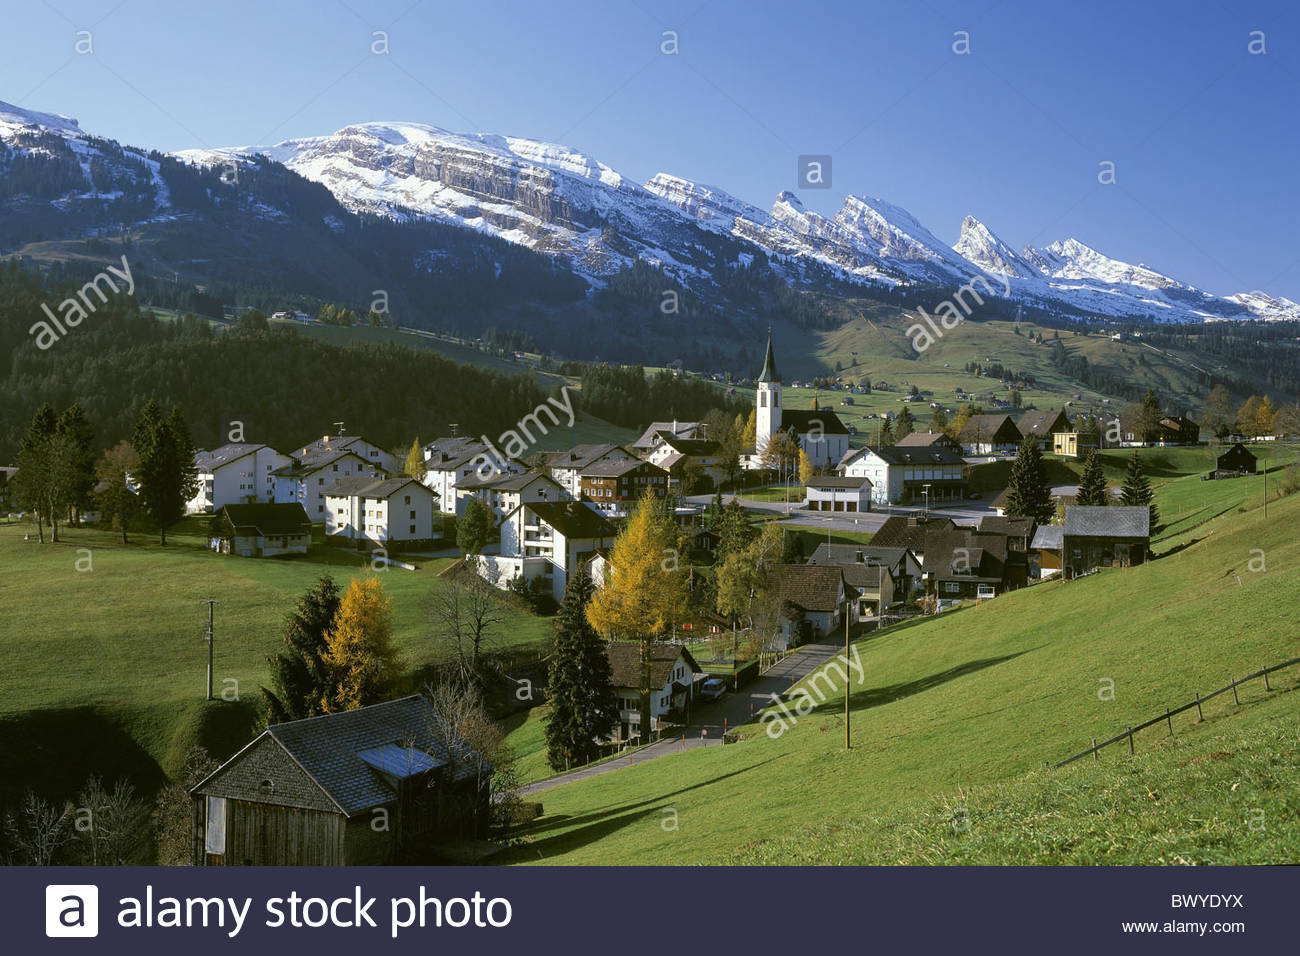 autumn canton st gallen churfirsten mountains scenery landscape stock photo royalty free image. Black Bedroom Furniture Sets. Home Design Ideas